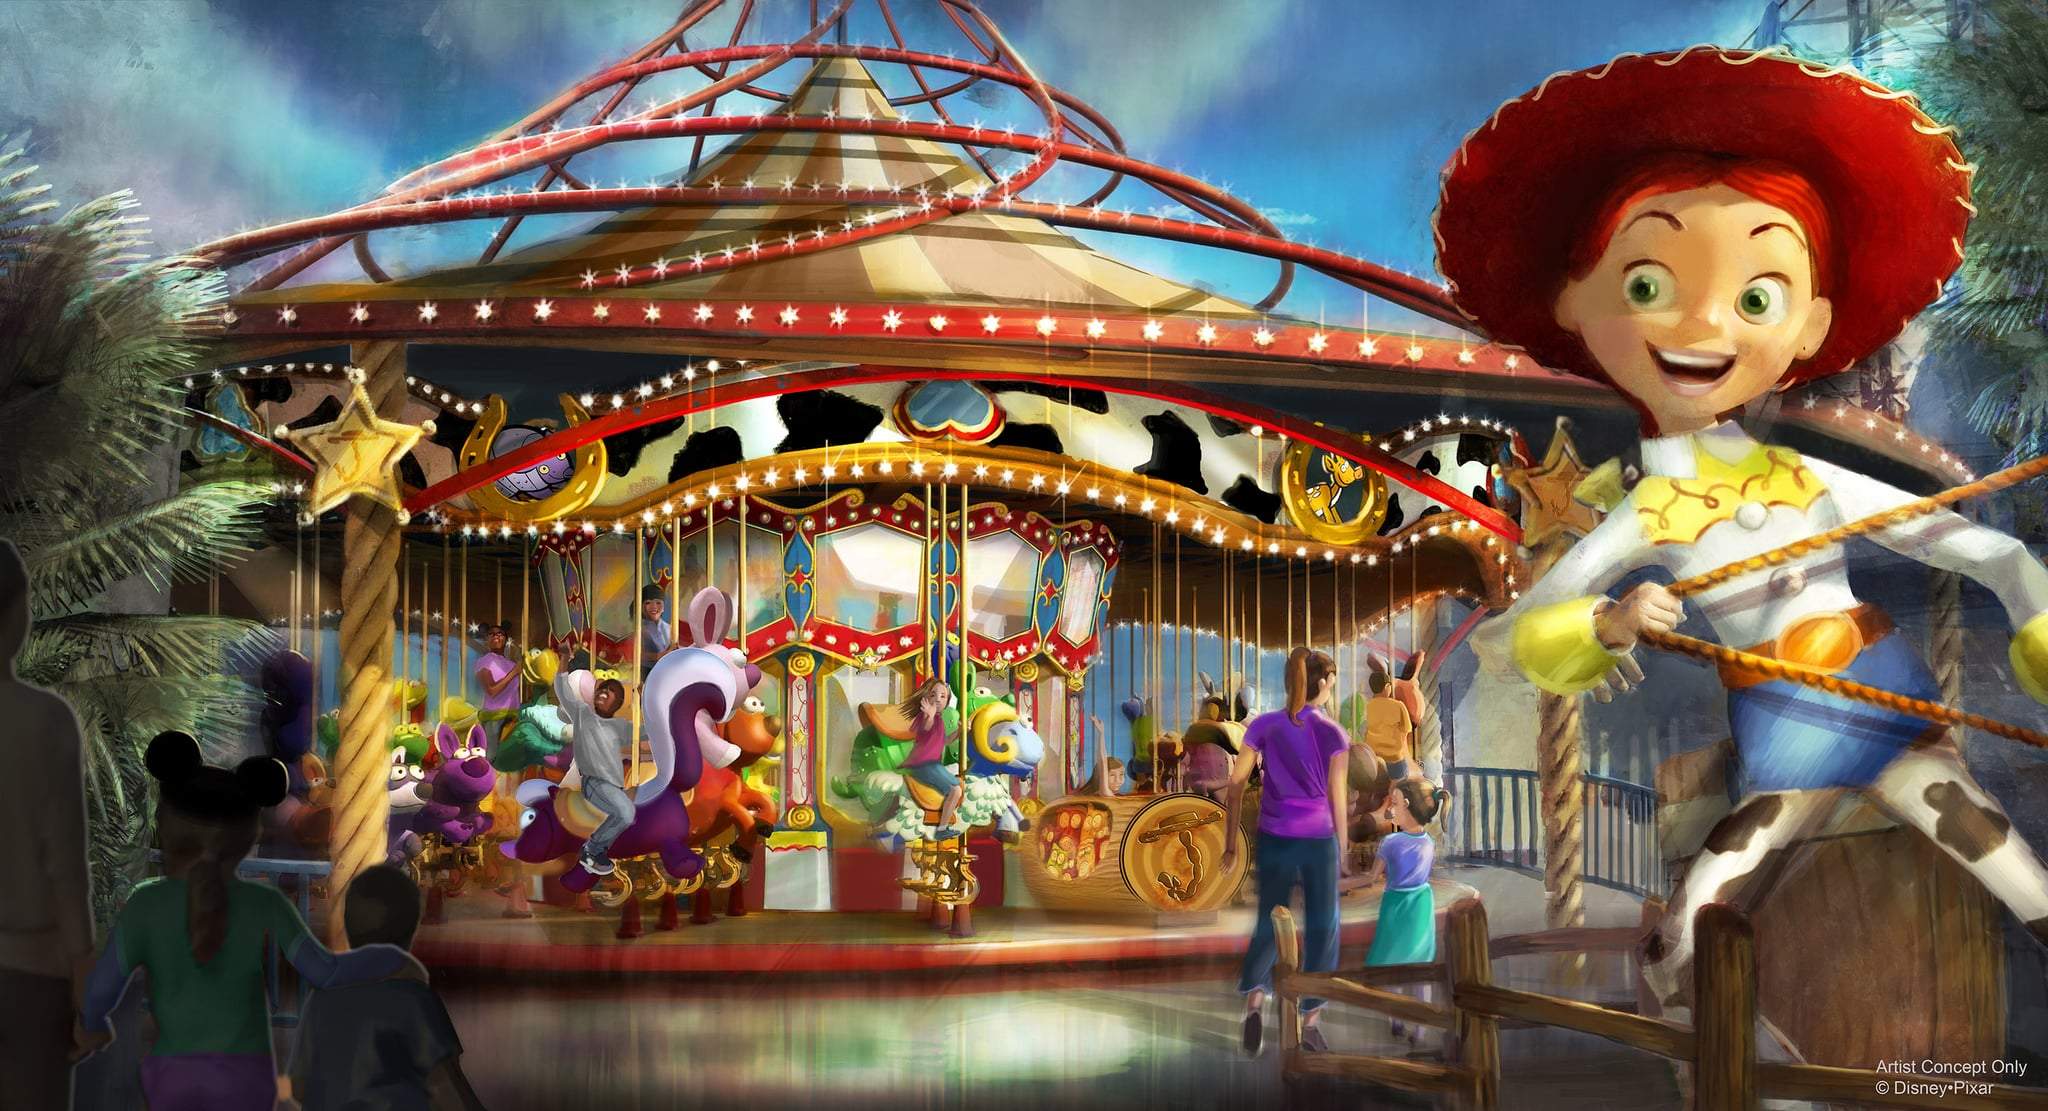 JESSIE'S CRITTER CAROUSEL AT PIXAR PIER — Jessie's Critter Carousel, a future attraction coming to Pixar Pier, is inspired by Jessie's wilderness friends featured in Woody's Roundup television show from